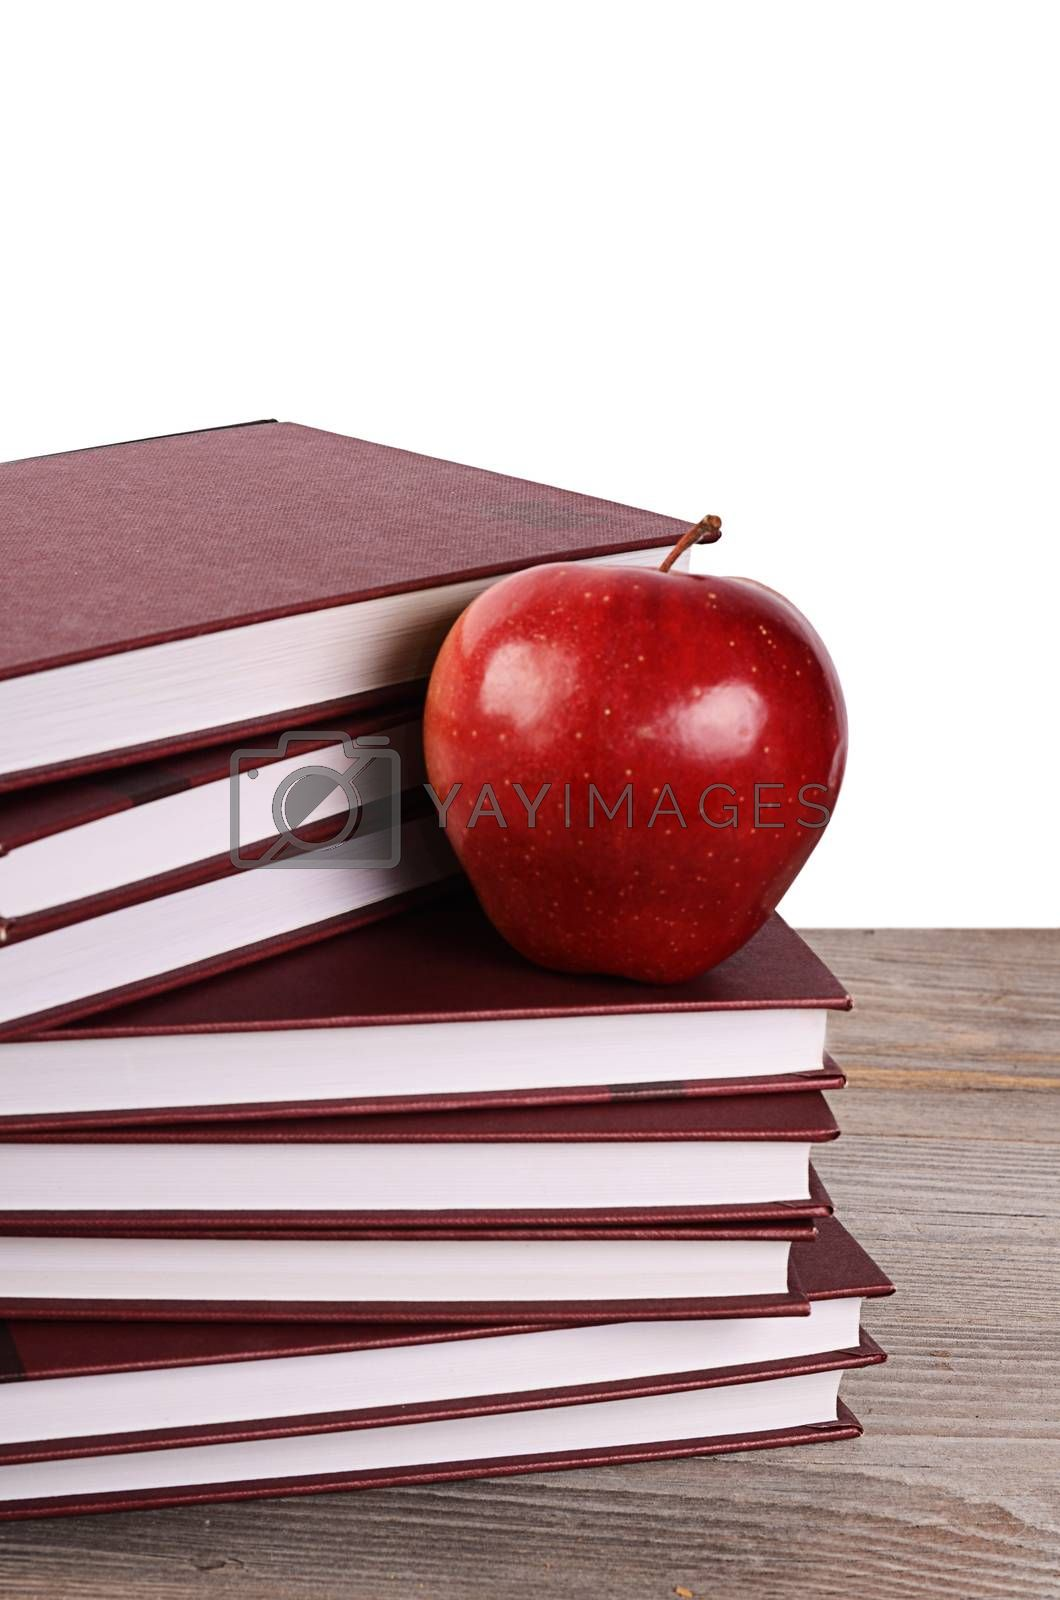 Royalty free image of Book with apple isolated on white by SvetaVo